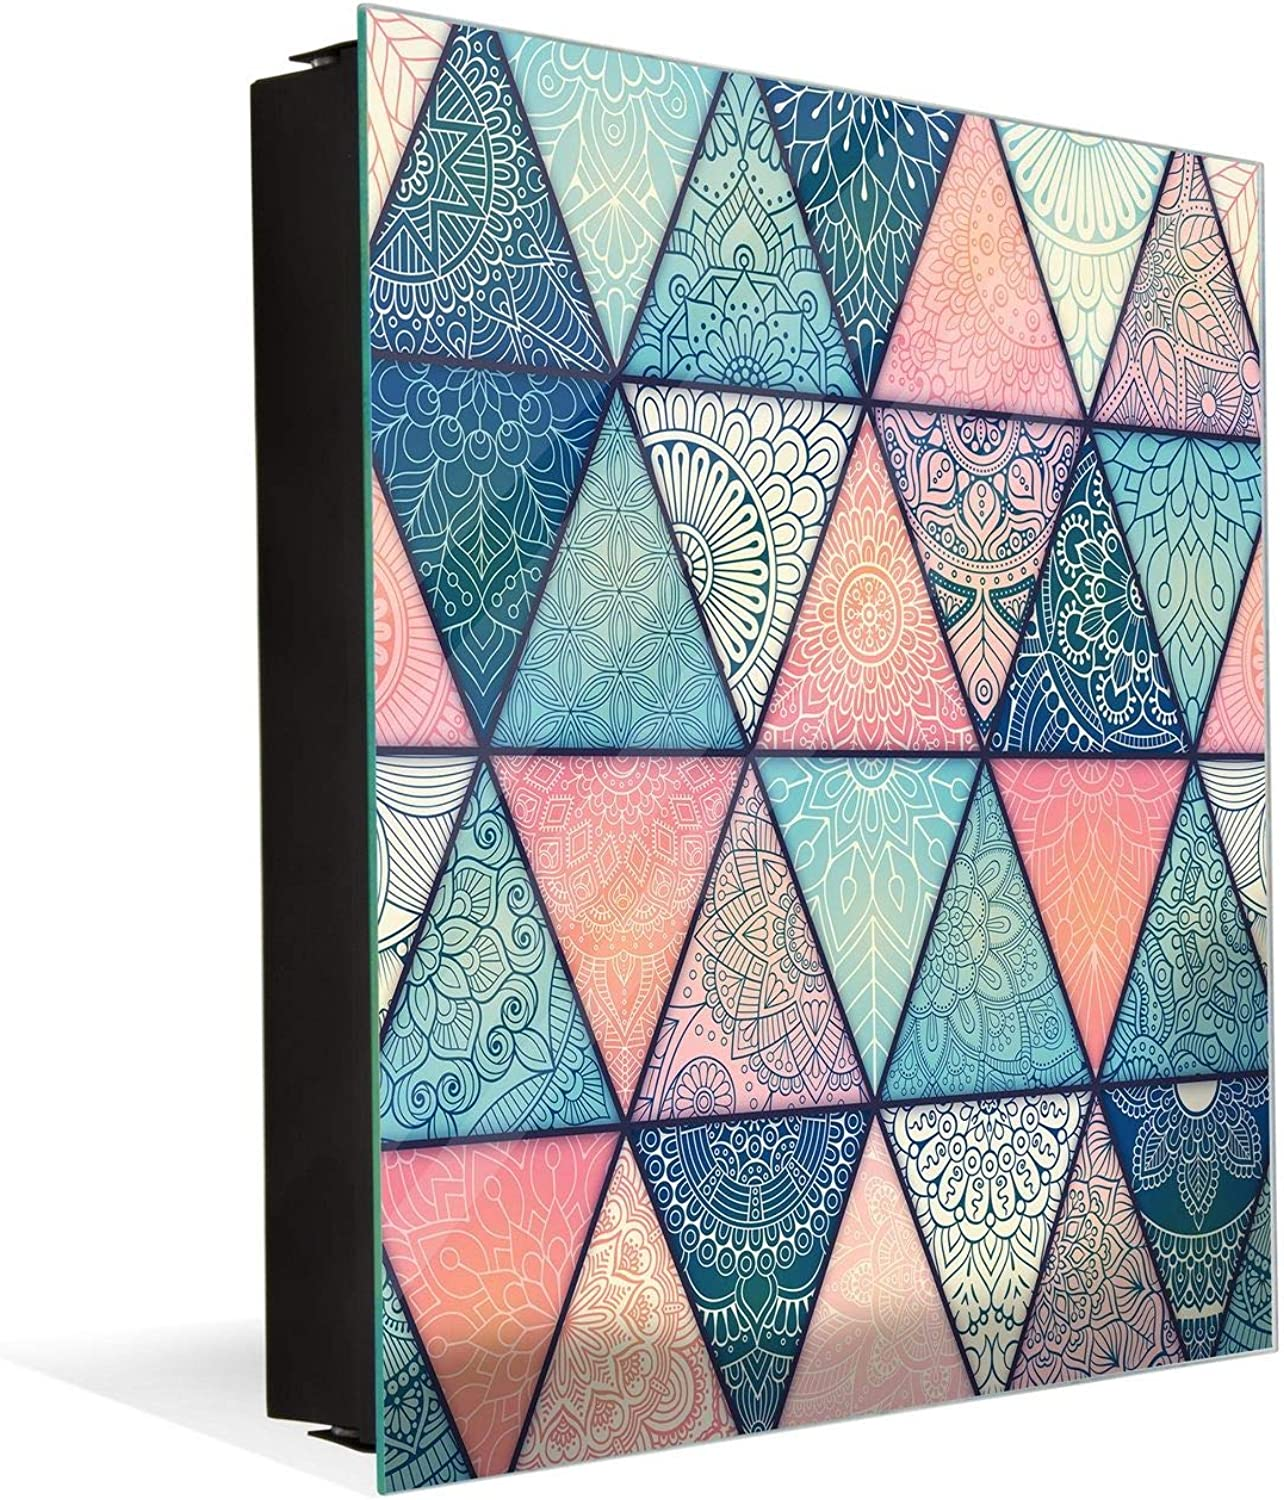 Wall Mount Key Box Together with Decorative Dry Erase Board K12 Hand Drawn Mandala